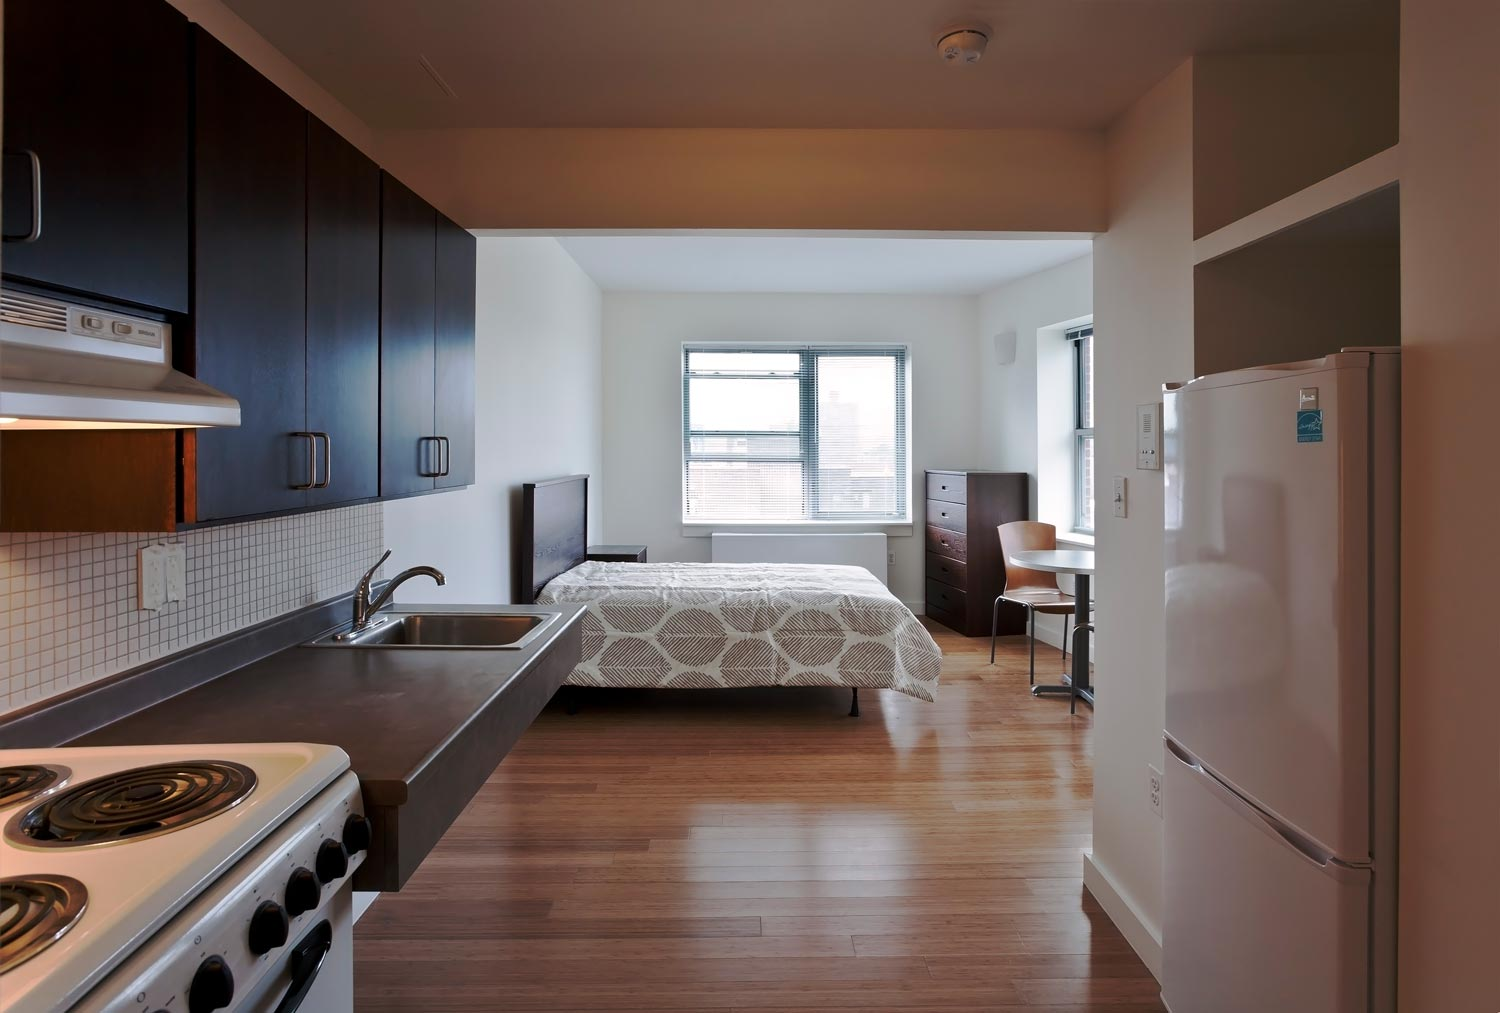 The green efficiency units at Kingsbridge Terrace each have a kitchenette and accessible bathroom.